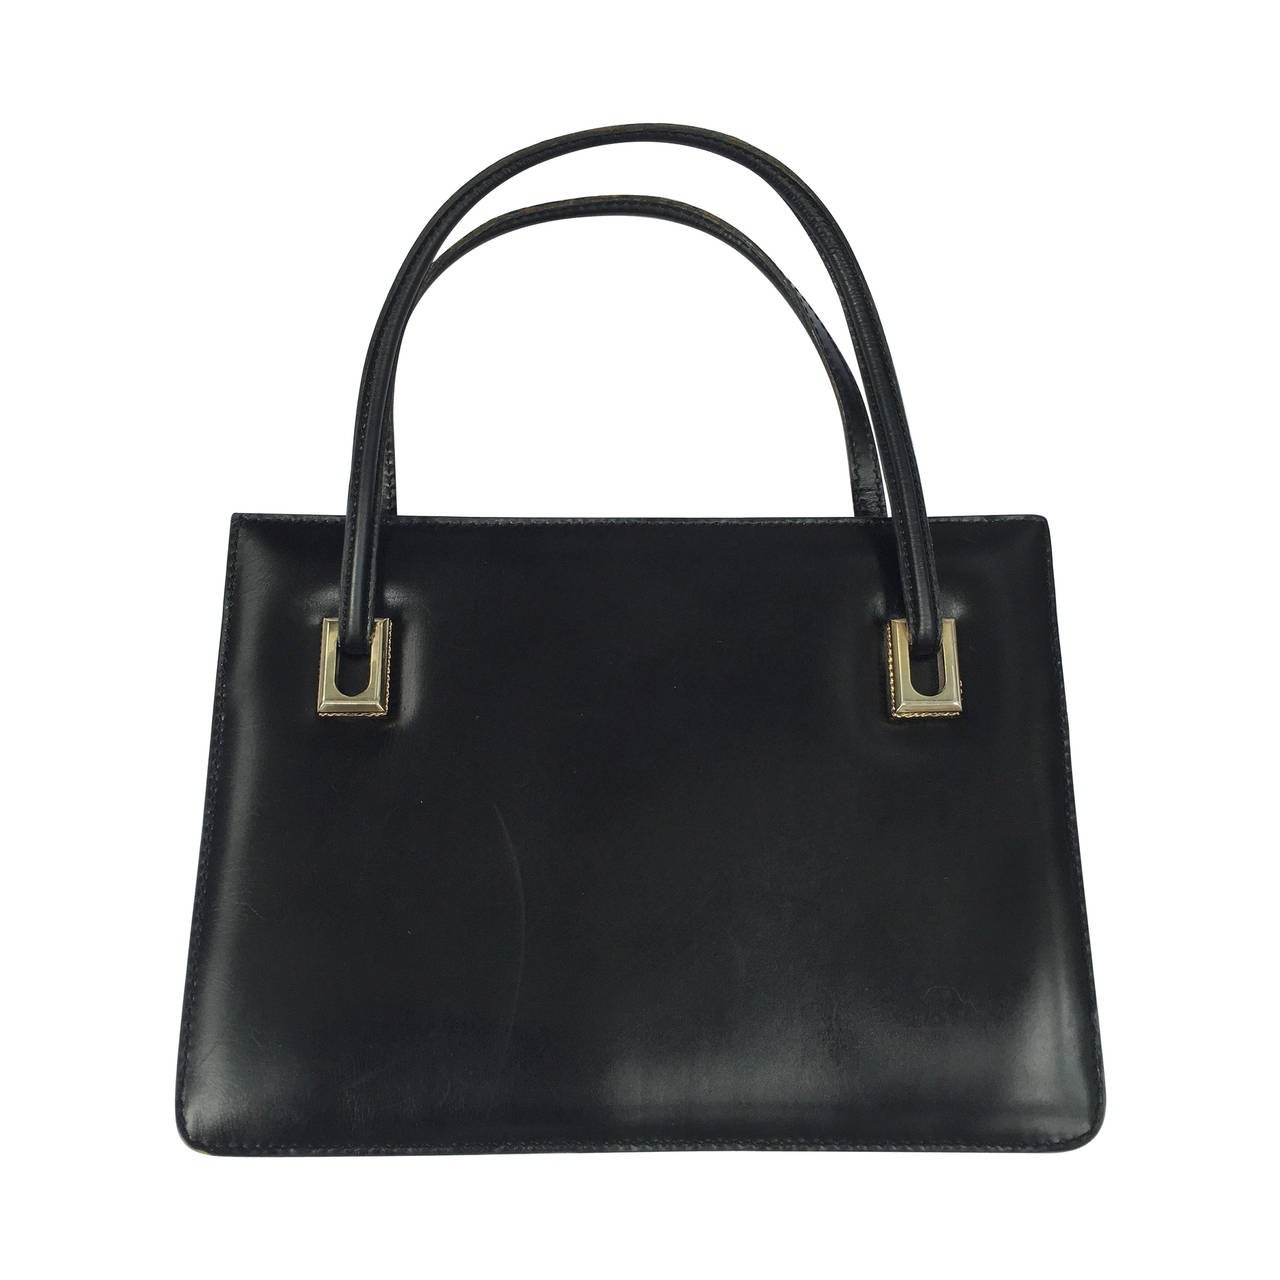 Loewe 60s black leather handbag. 1